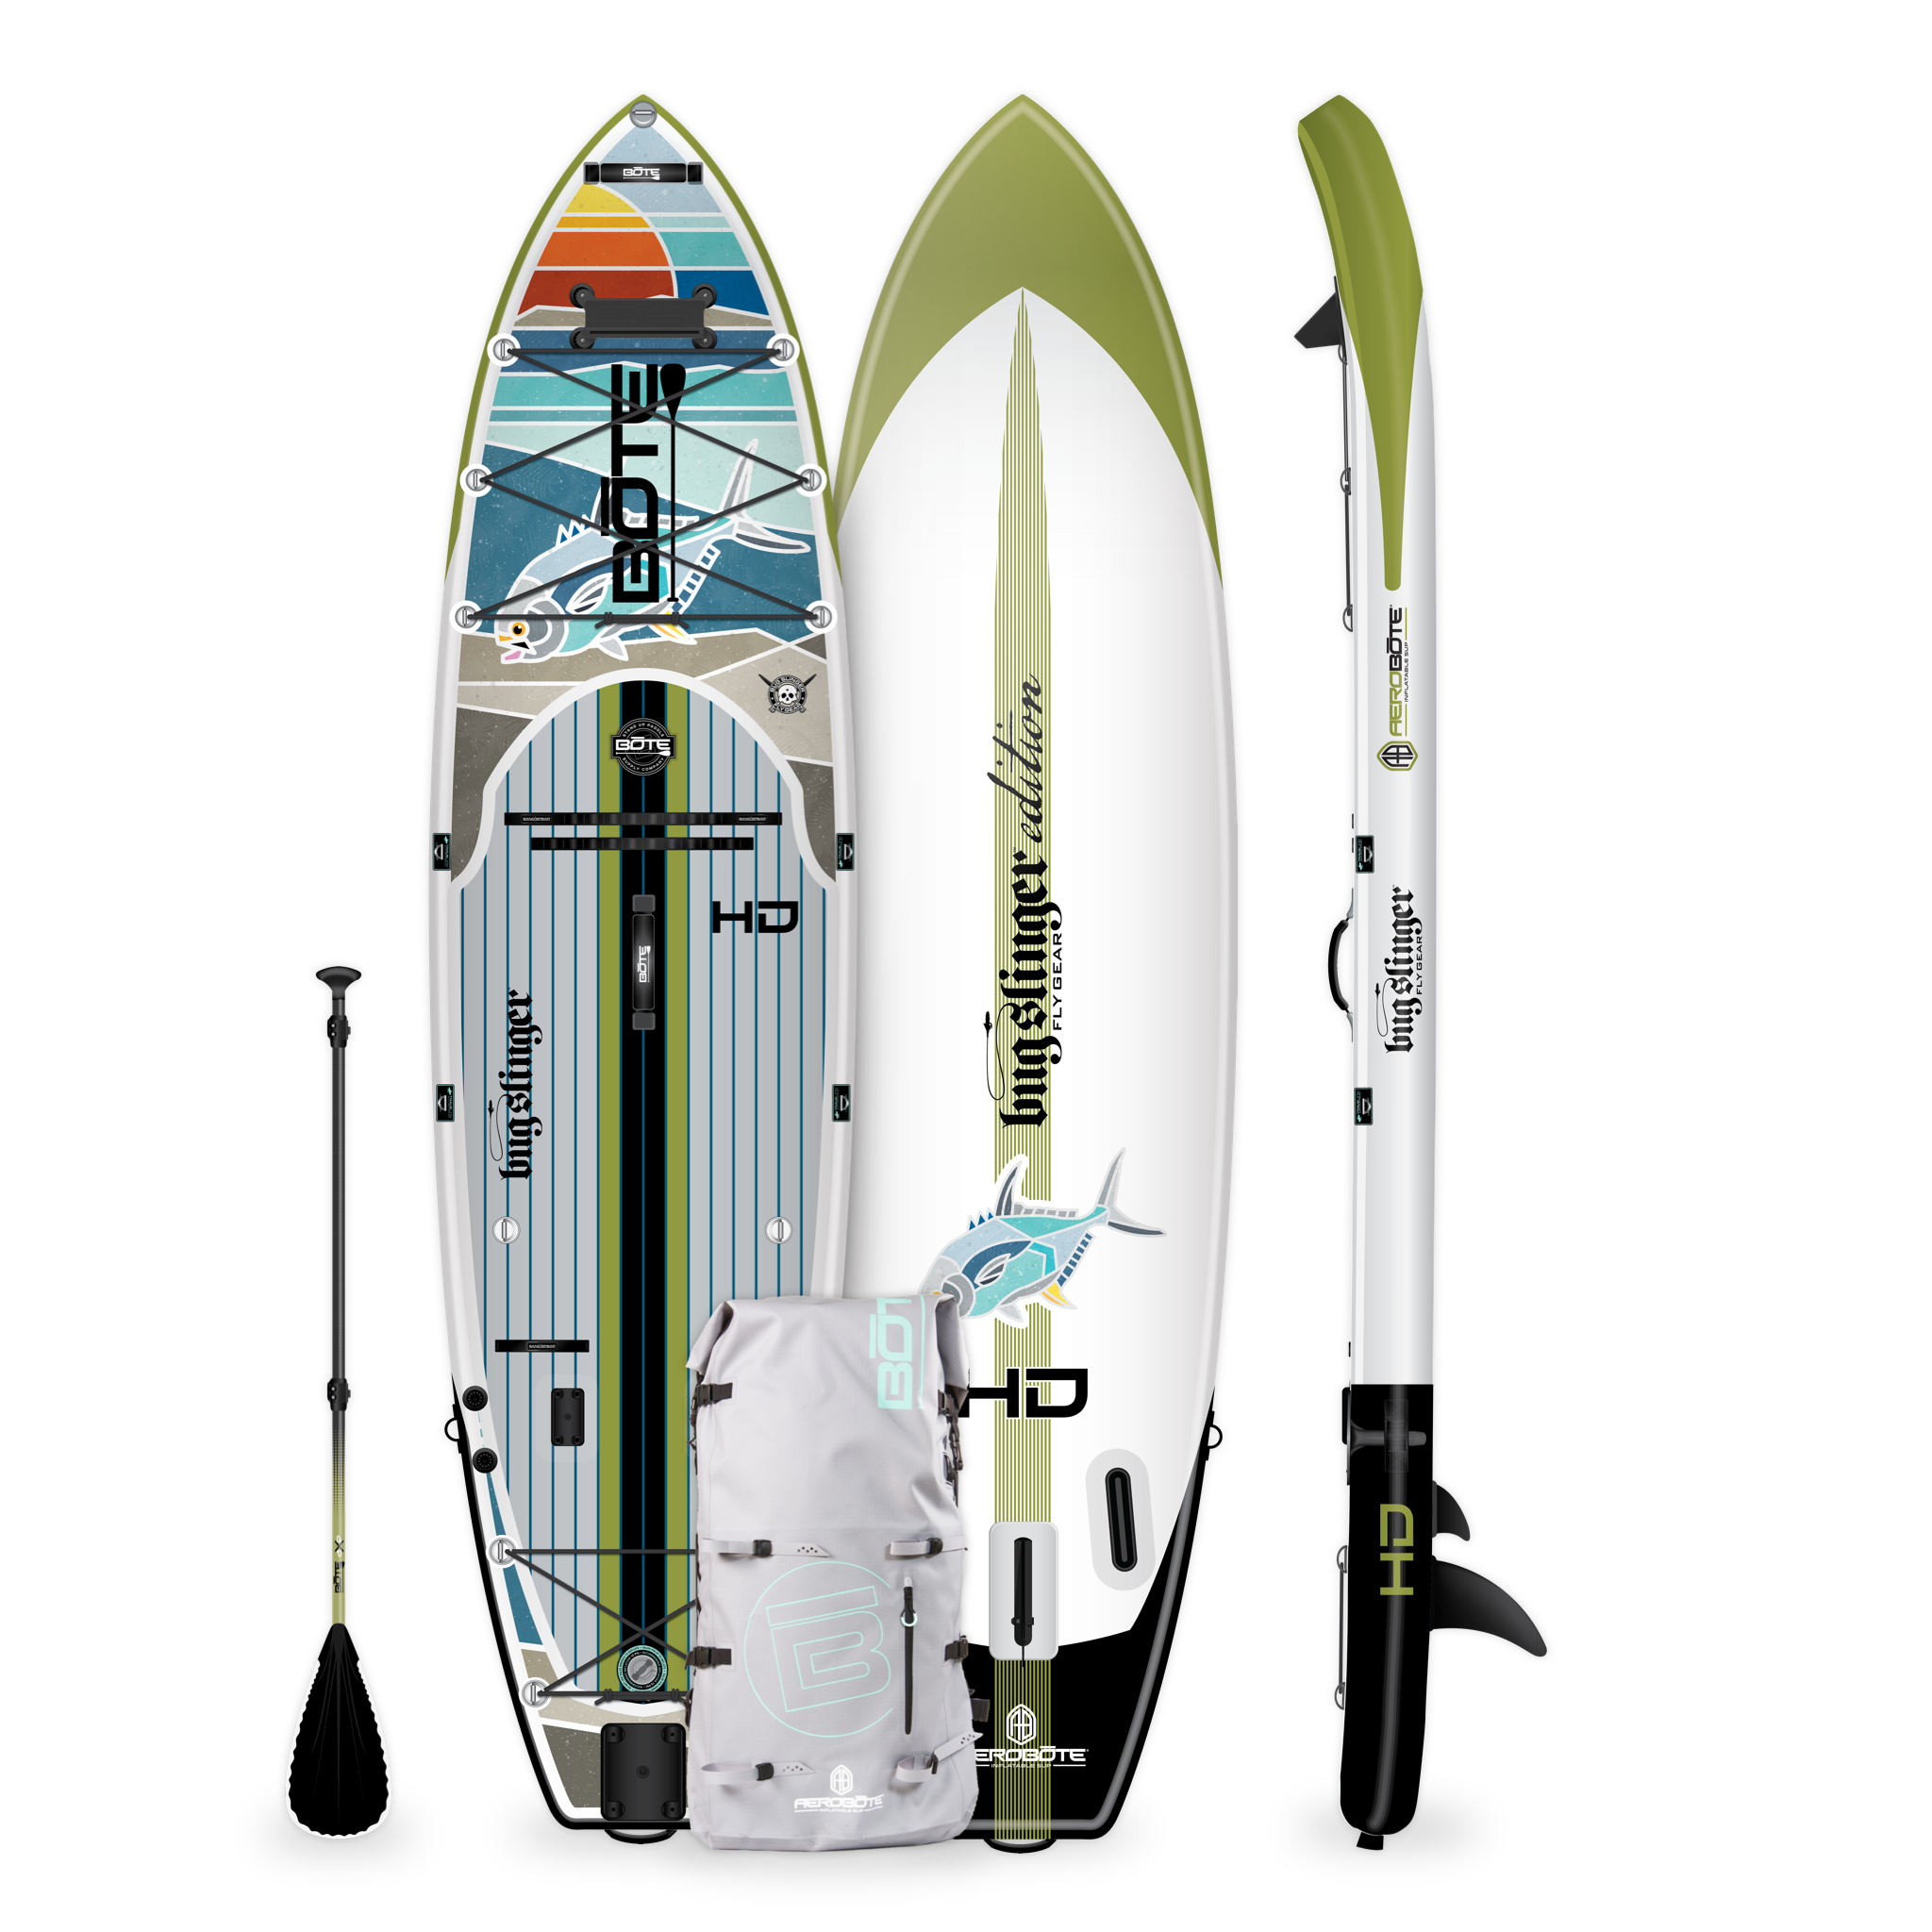 Hd Aero Inflatable Paddle Board In 2020 Paddle Boarding Inflatable Paddle Board Paddle